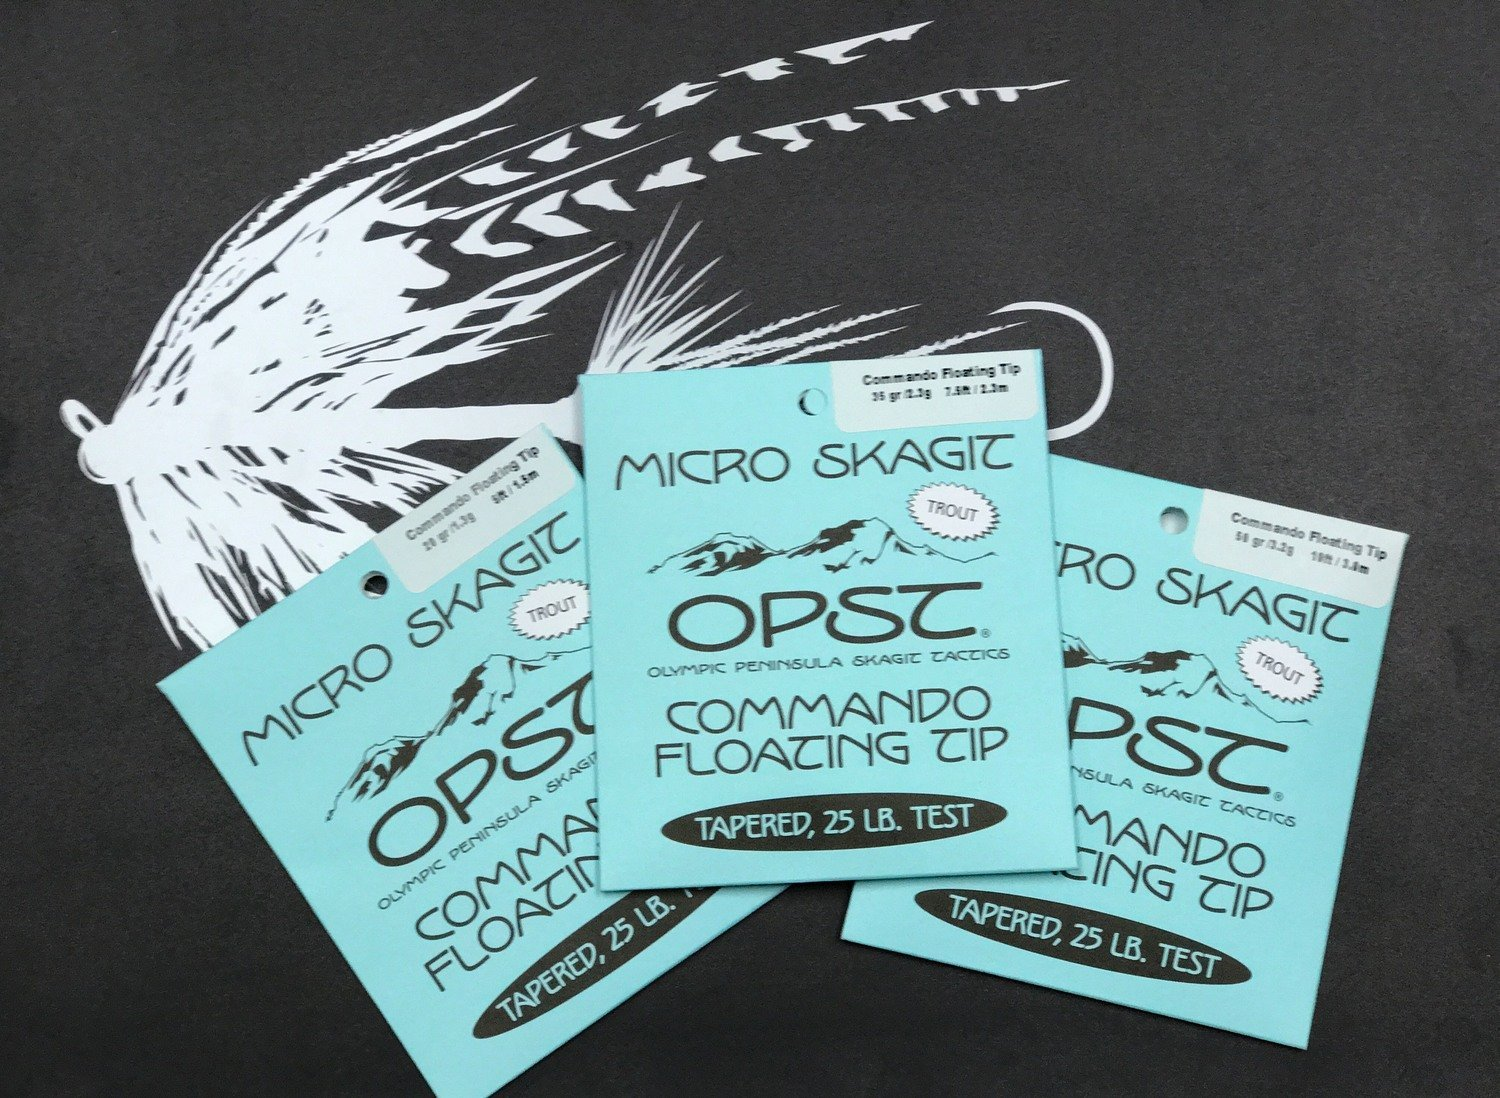 Commando Floating Tip - The TroutFitter Fly Shop